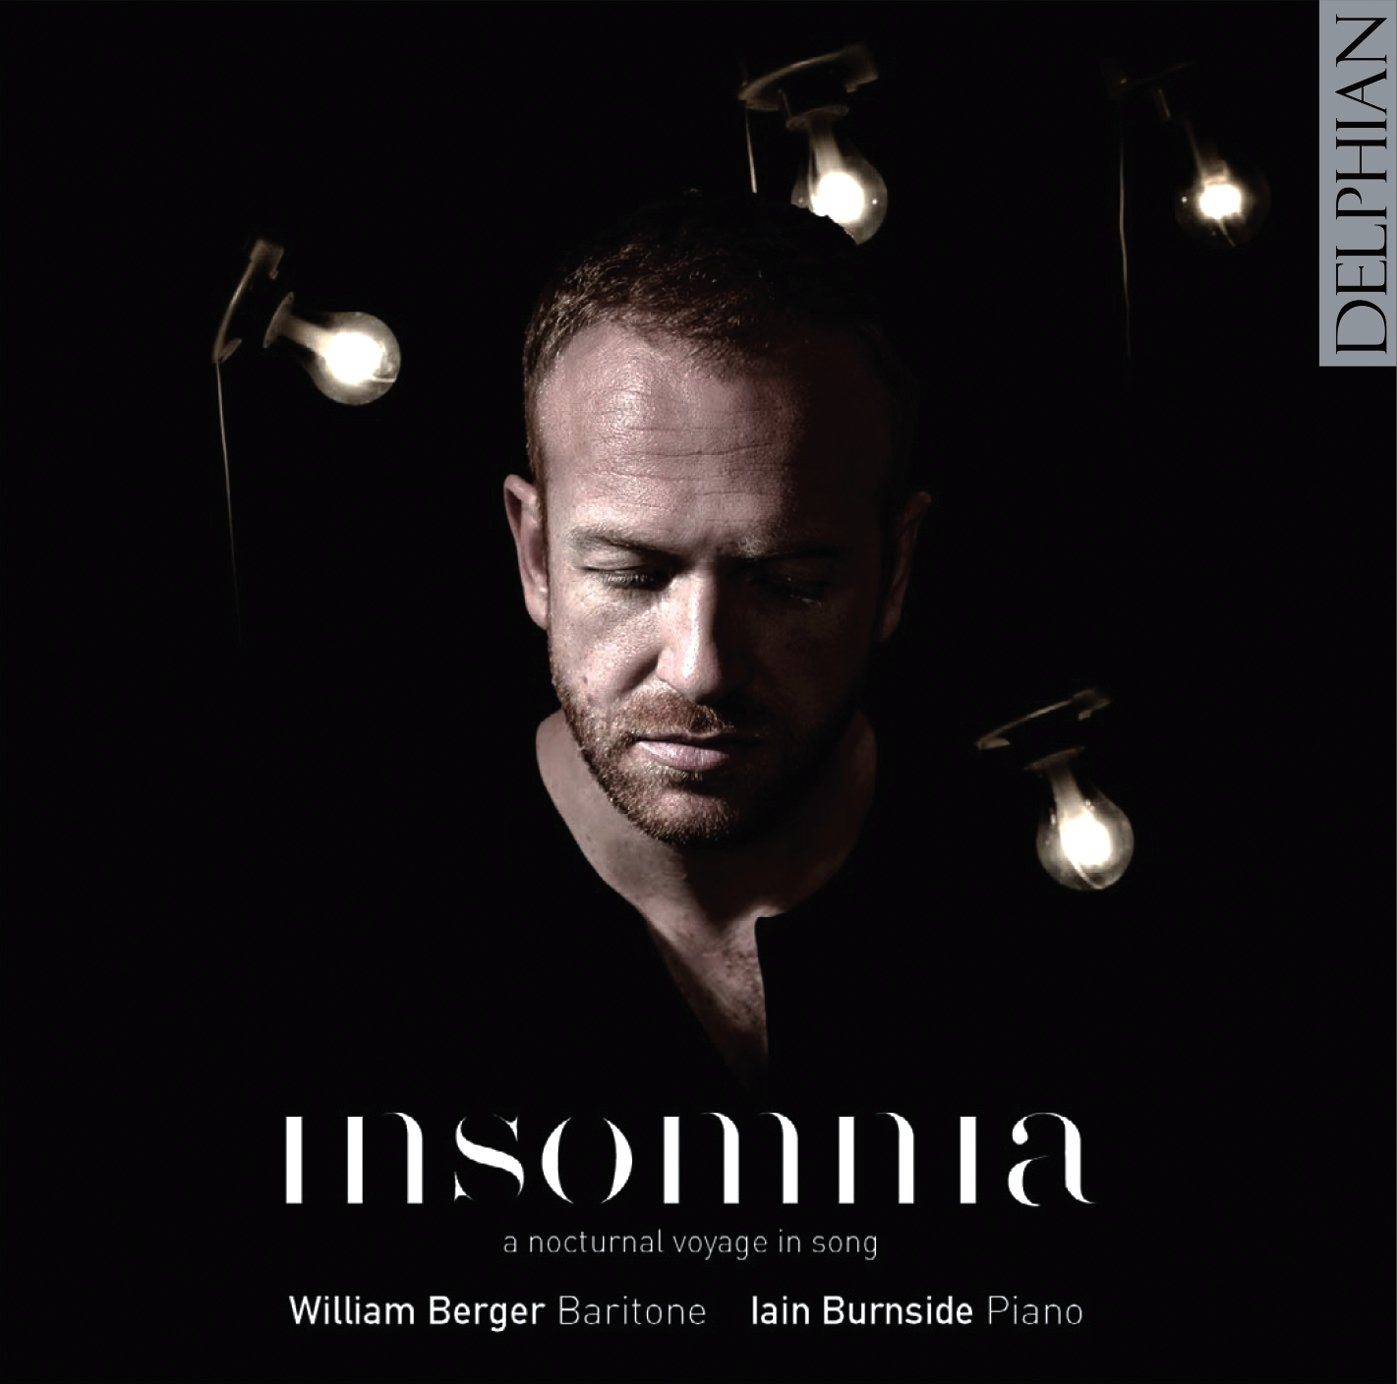 Insomnia: a nocturnal voyage in song CD Delphian Records